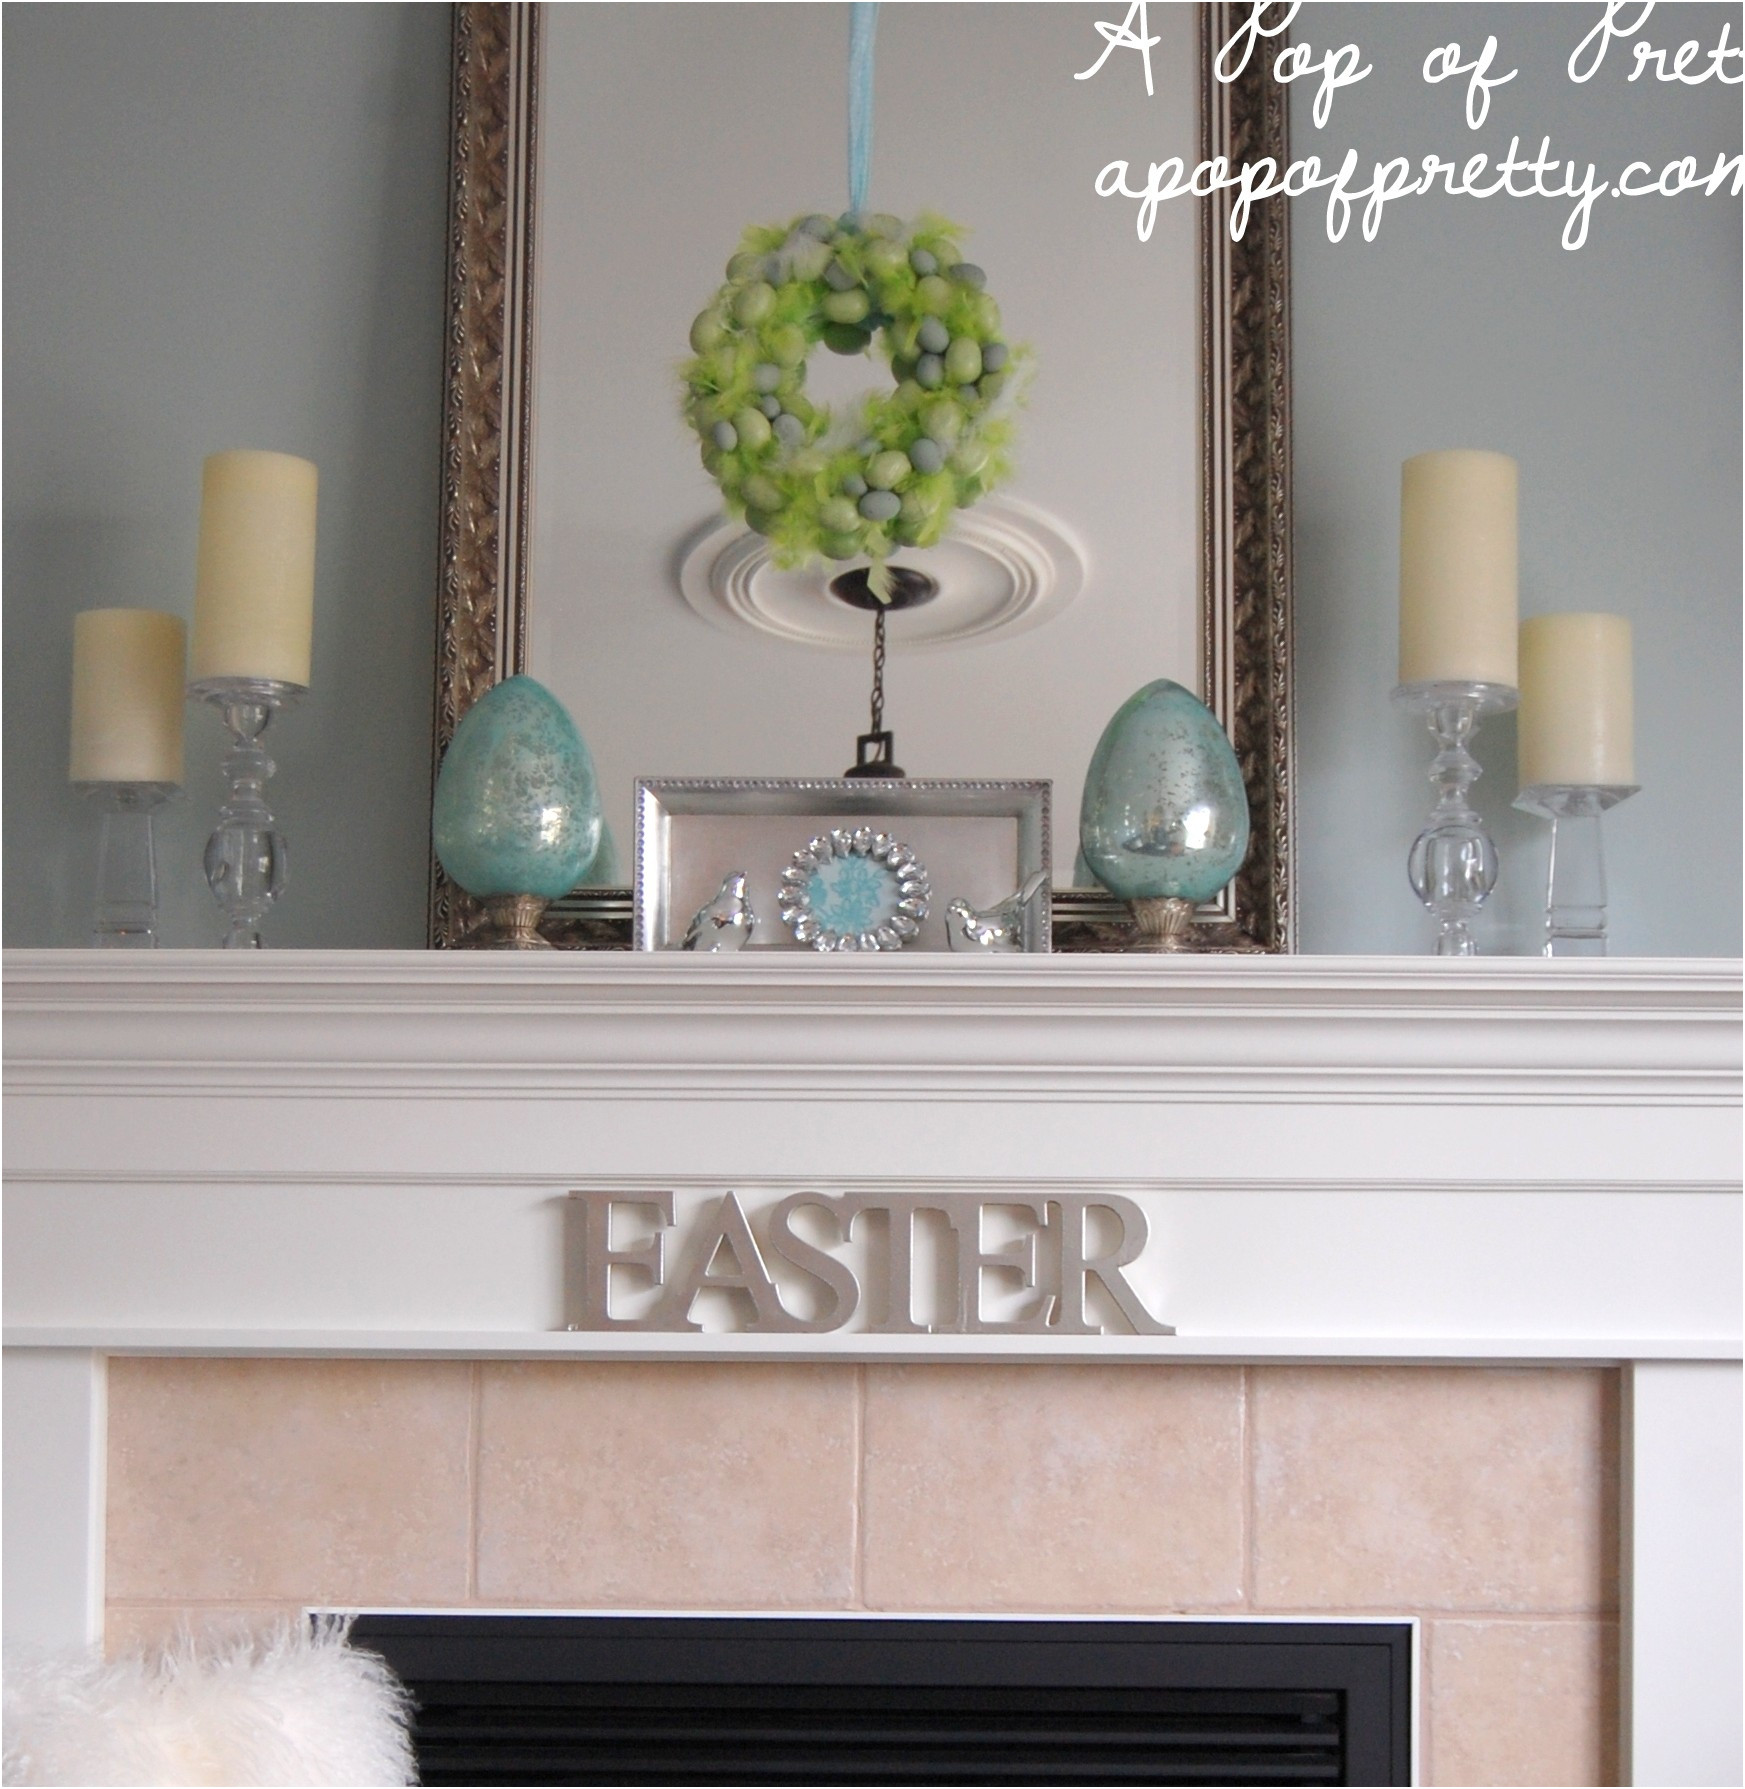 Decorative Ideas for Fireplace Mantels Fresh Easter Decorating Ideas Decorate A Simple Easter Mantel